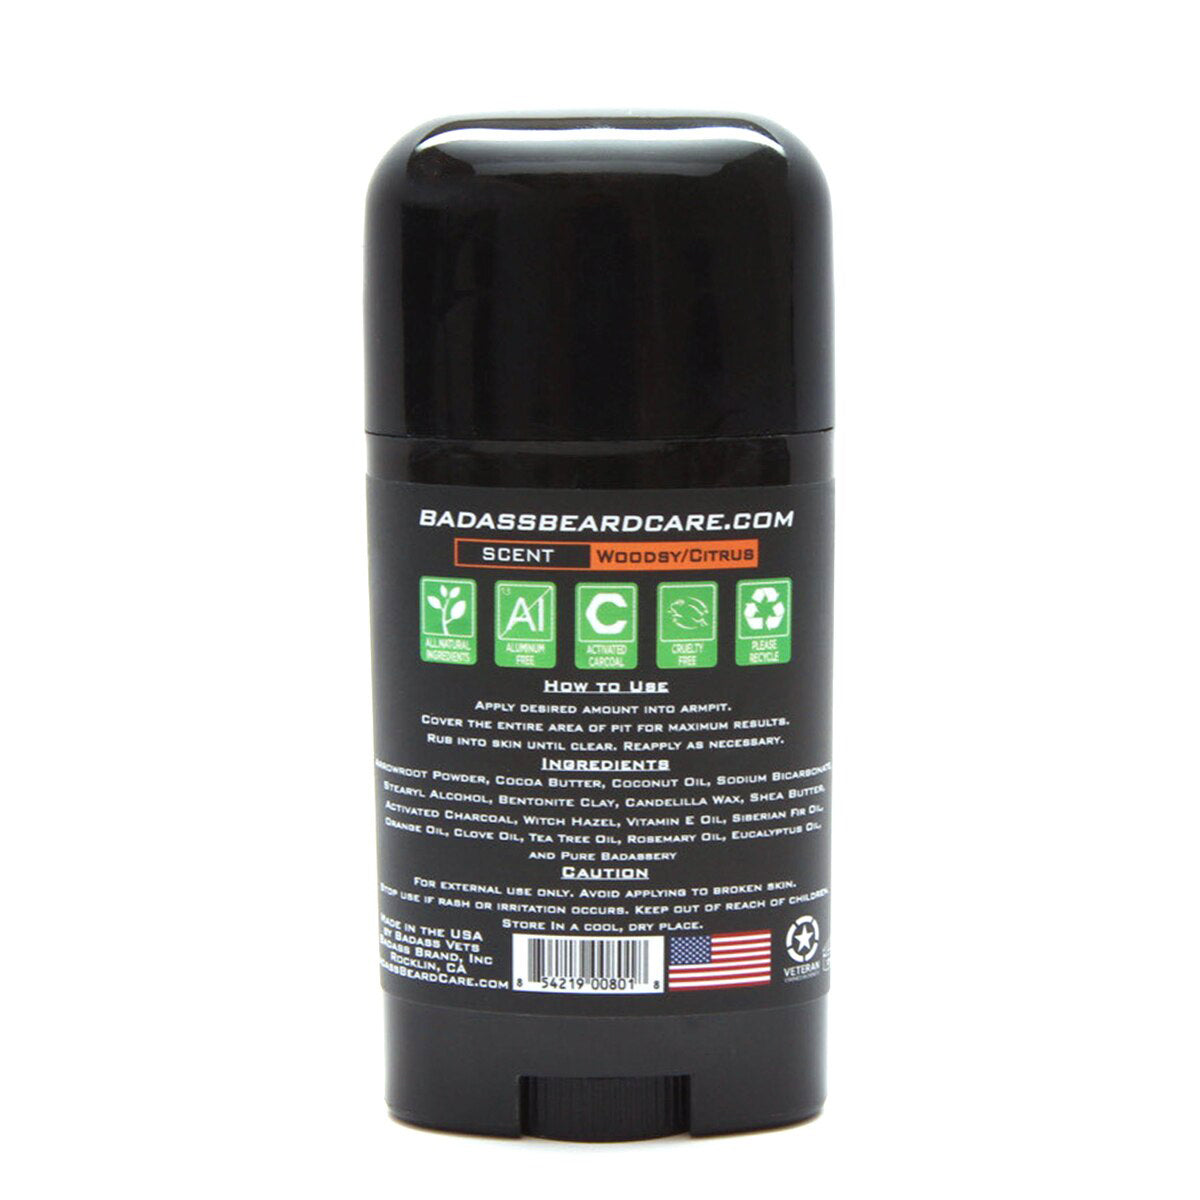 The Biker Badass Deodorant Stick